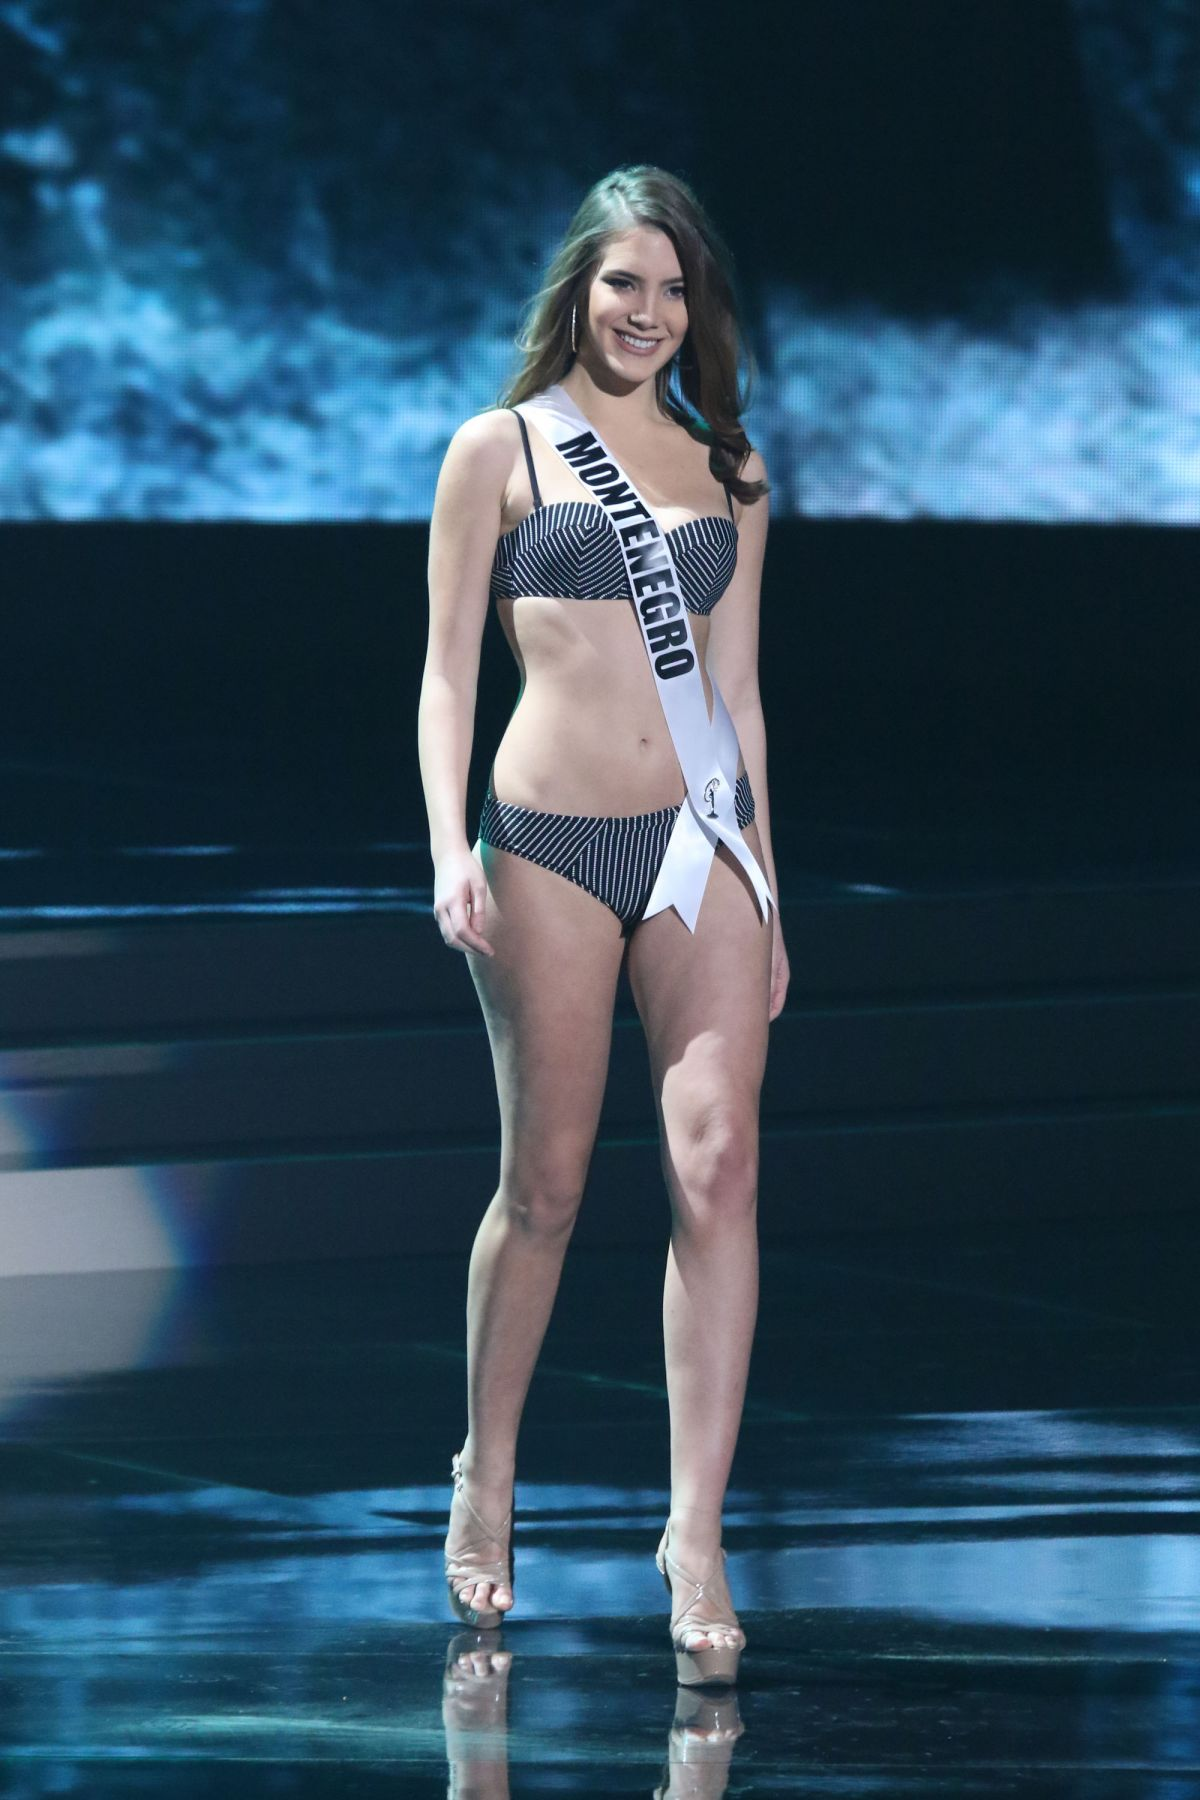 MAJA CUBIC - Miss Universe 2015 Preliminary Round 12/16/2015